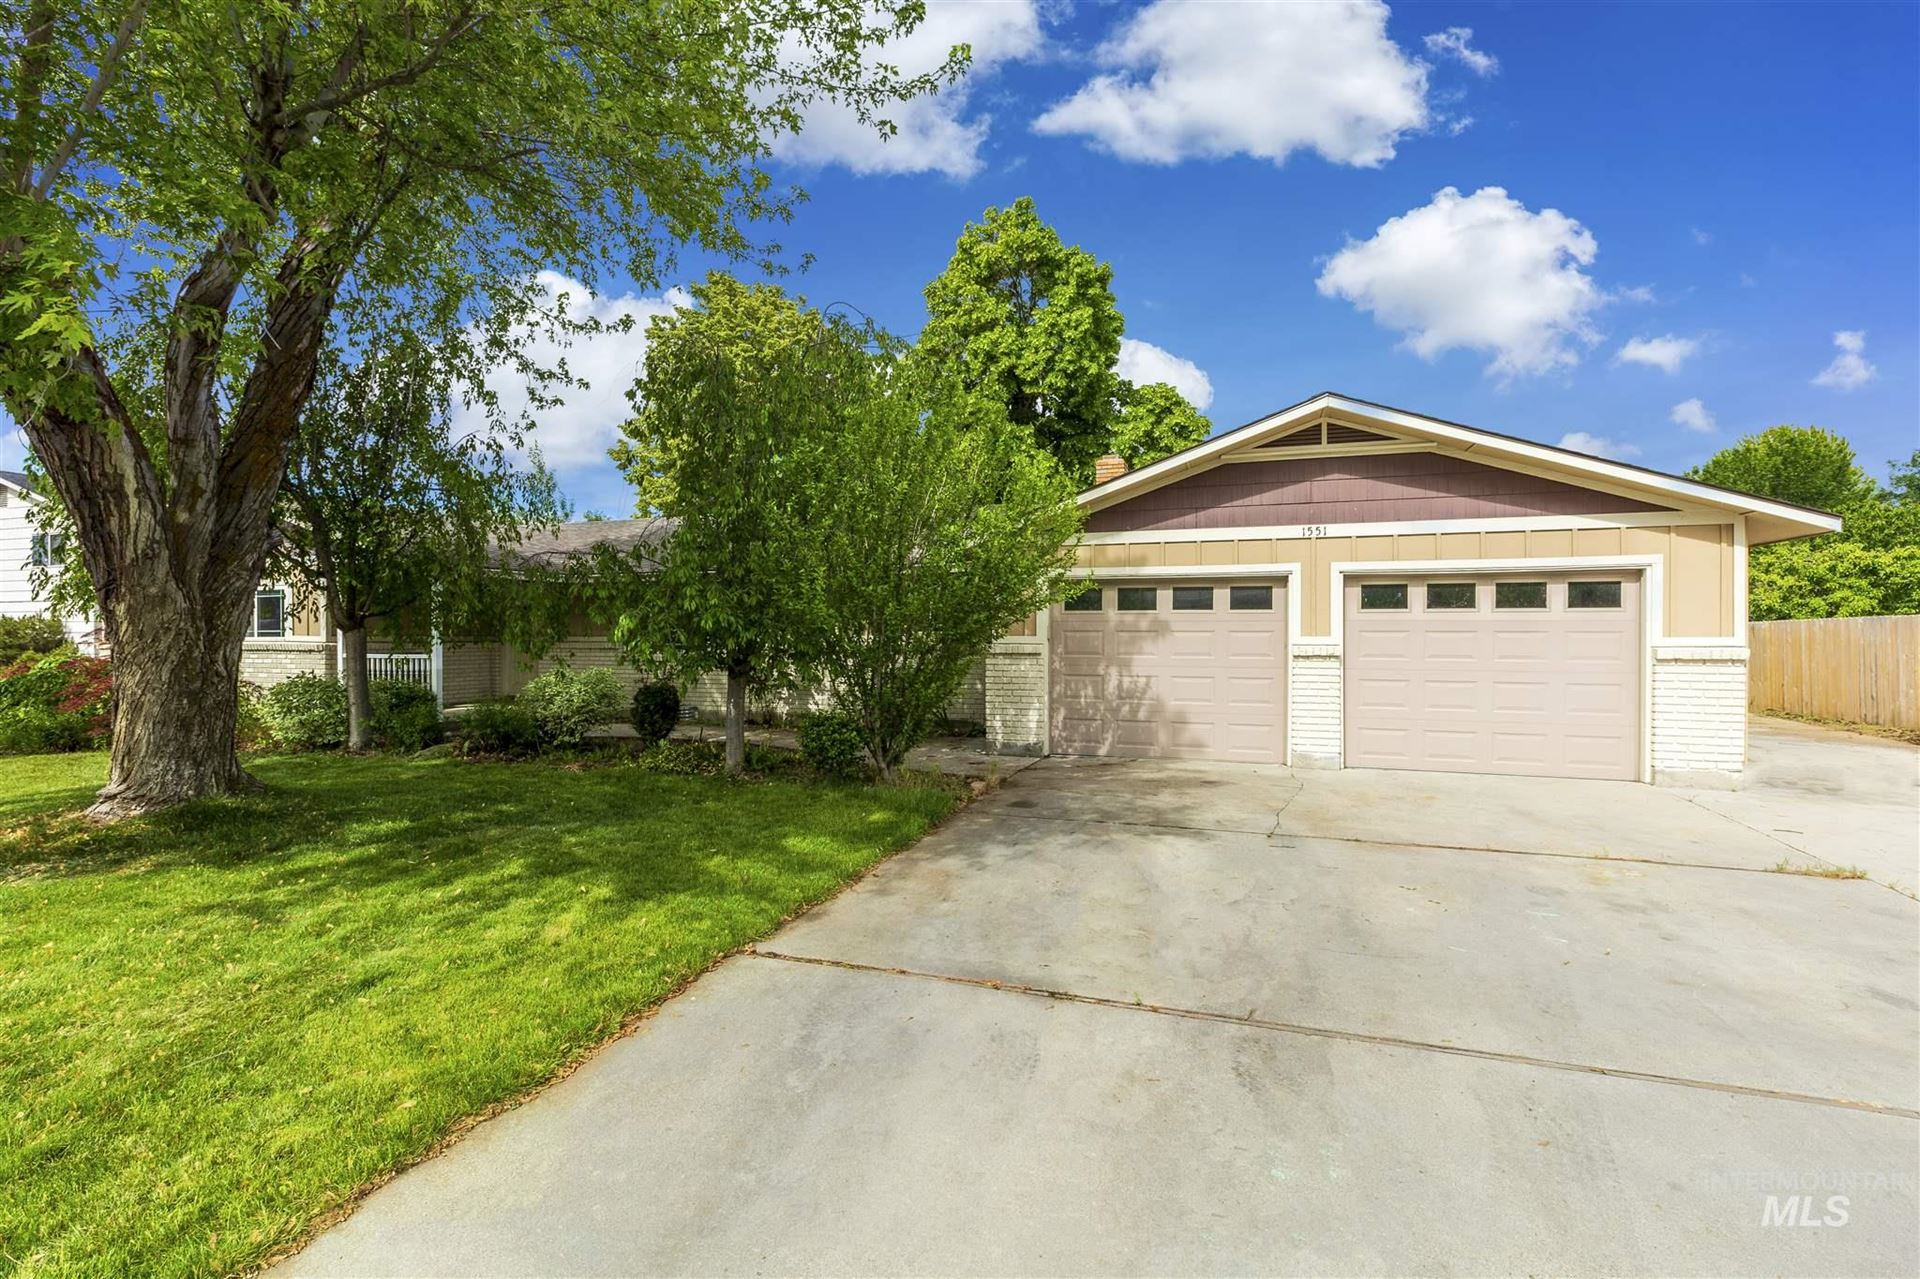 Photo of 1551 S Cotterell, Boise, ID 83709 (MLS # 98768201)